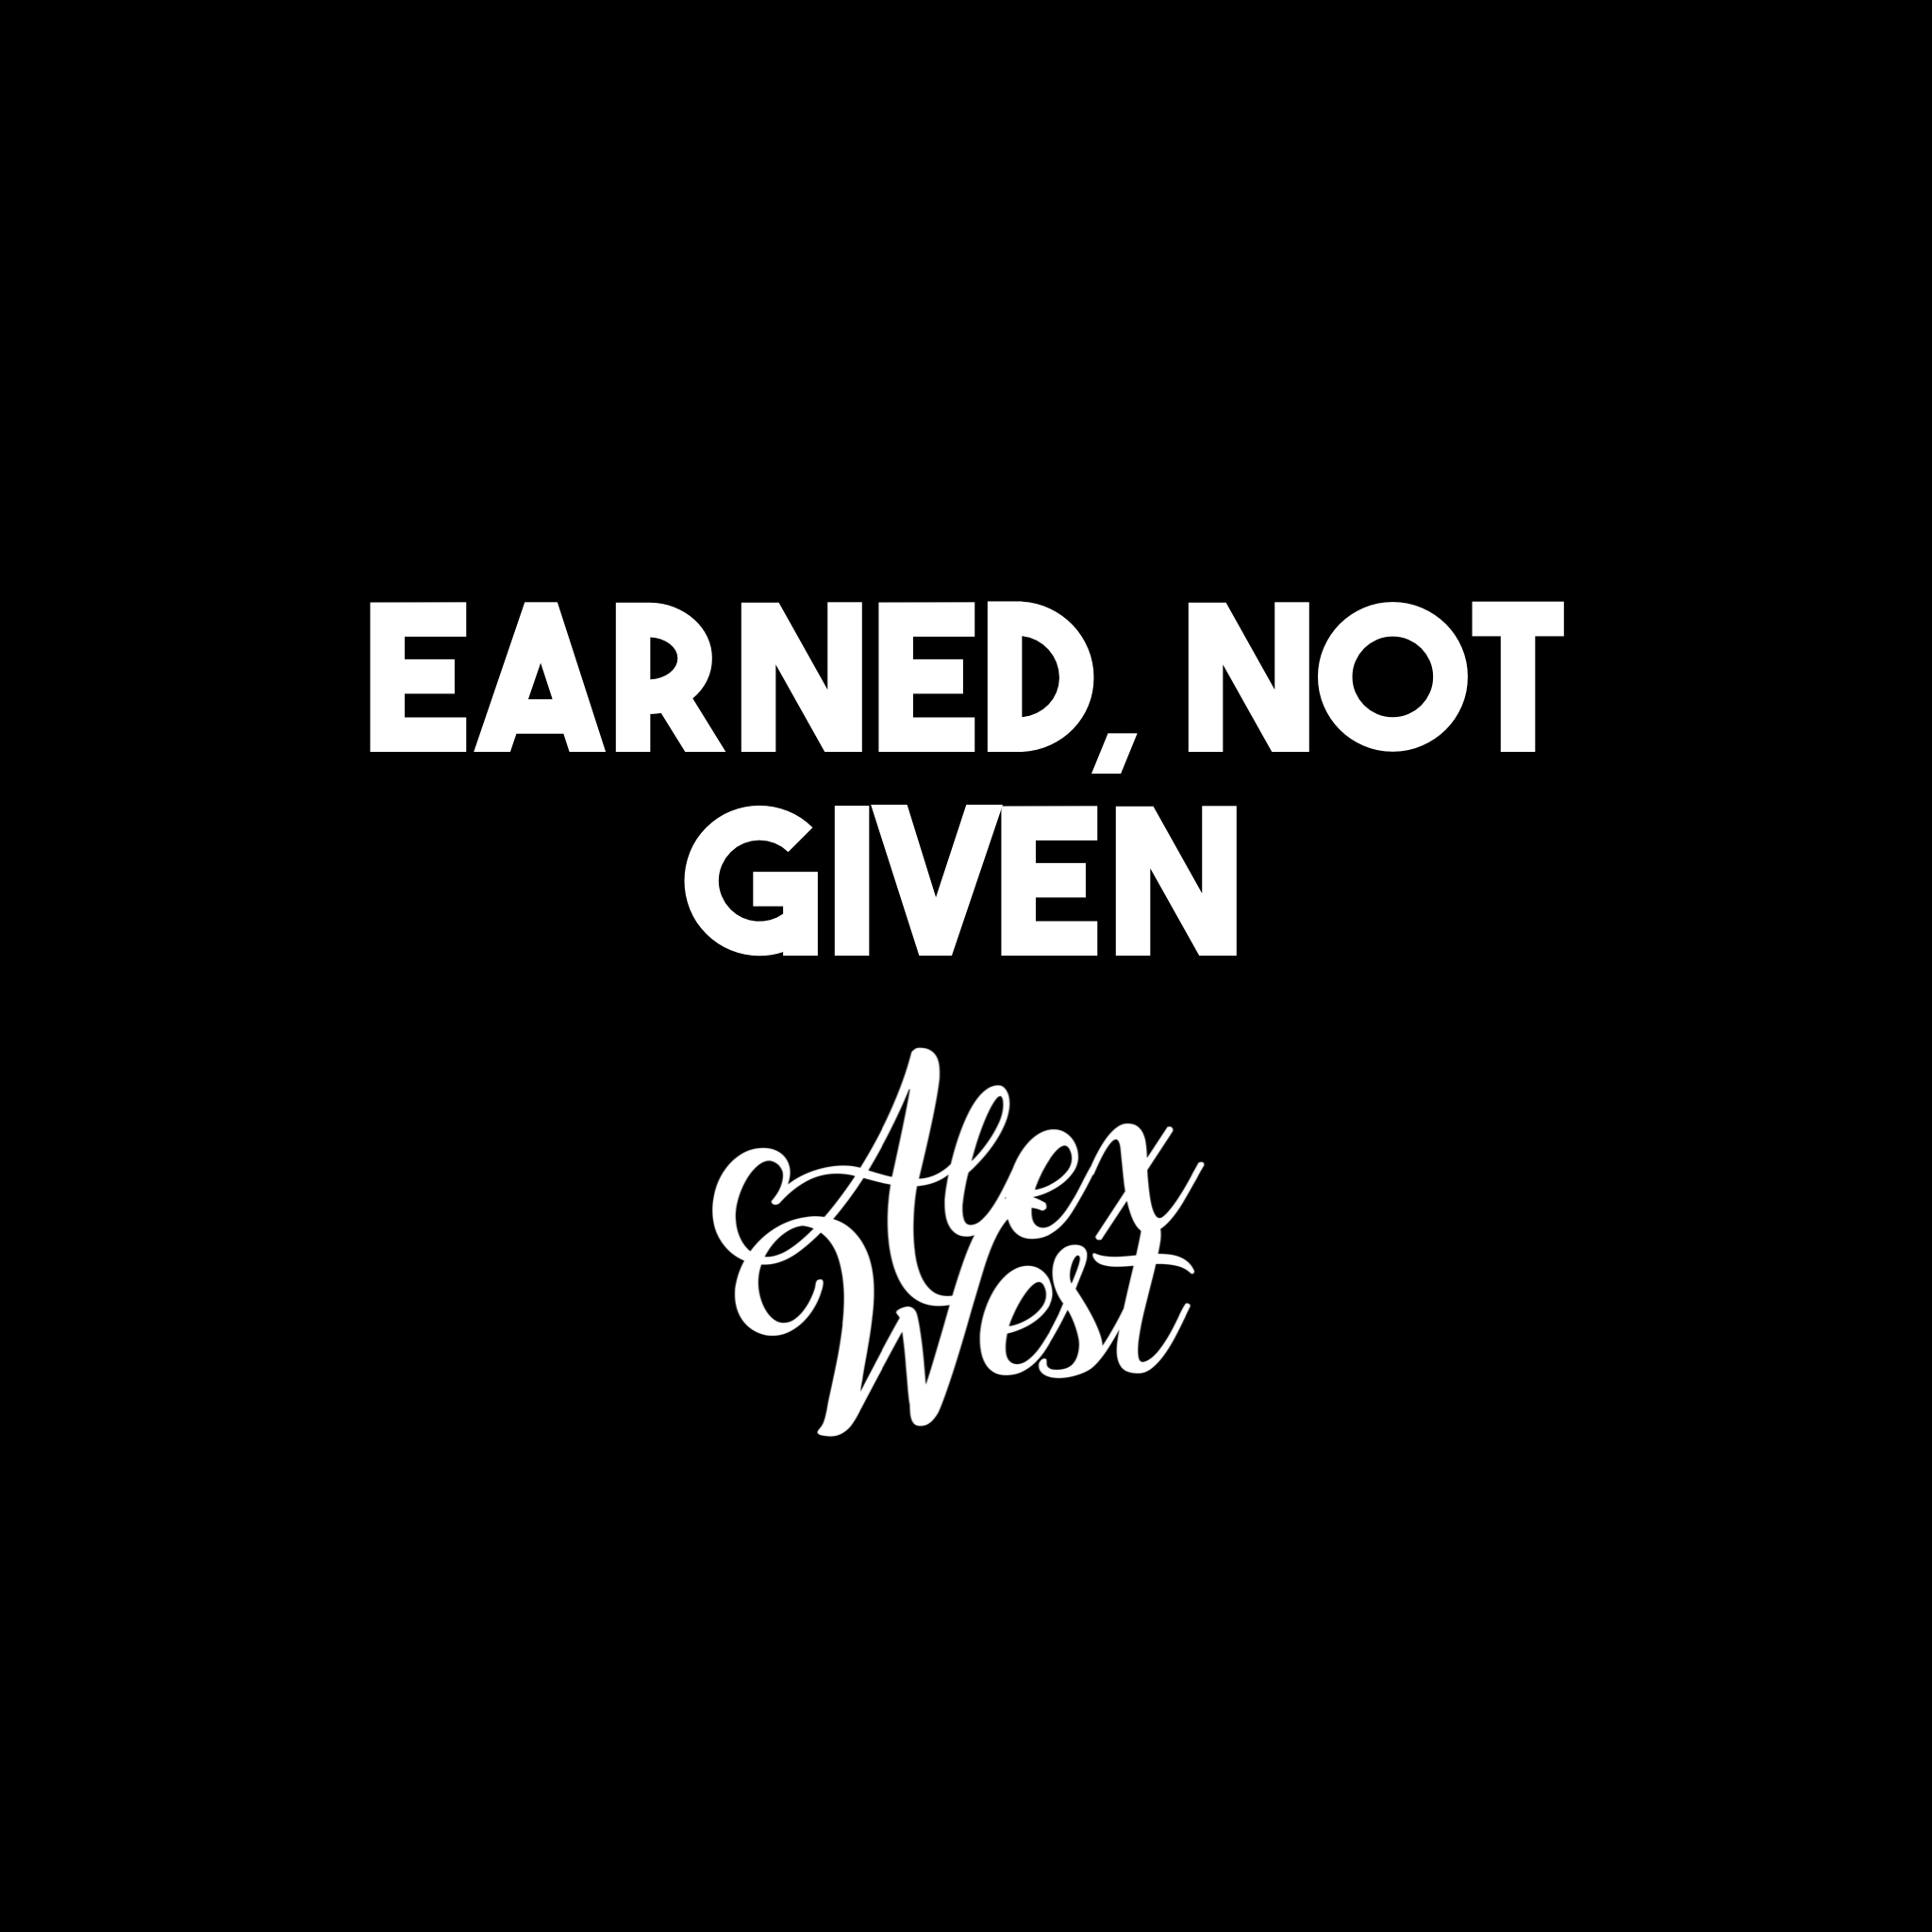 EARNED NOT GIVEN motivation quotes success inspiration gym fitness nike clothes fashion luxury success